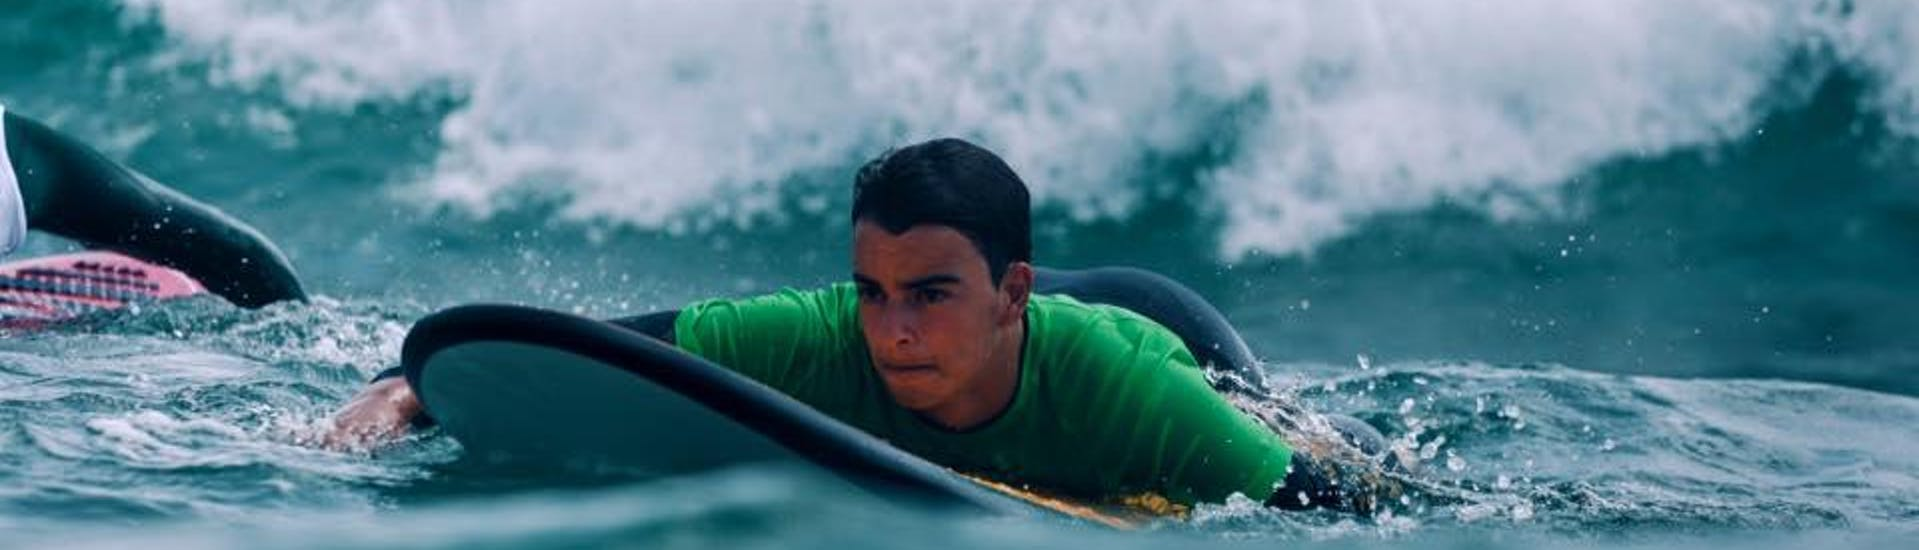 surfing-lessons-in-valencia---all-levels-hero-2